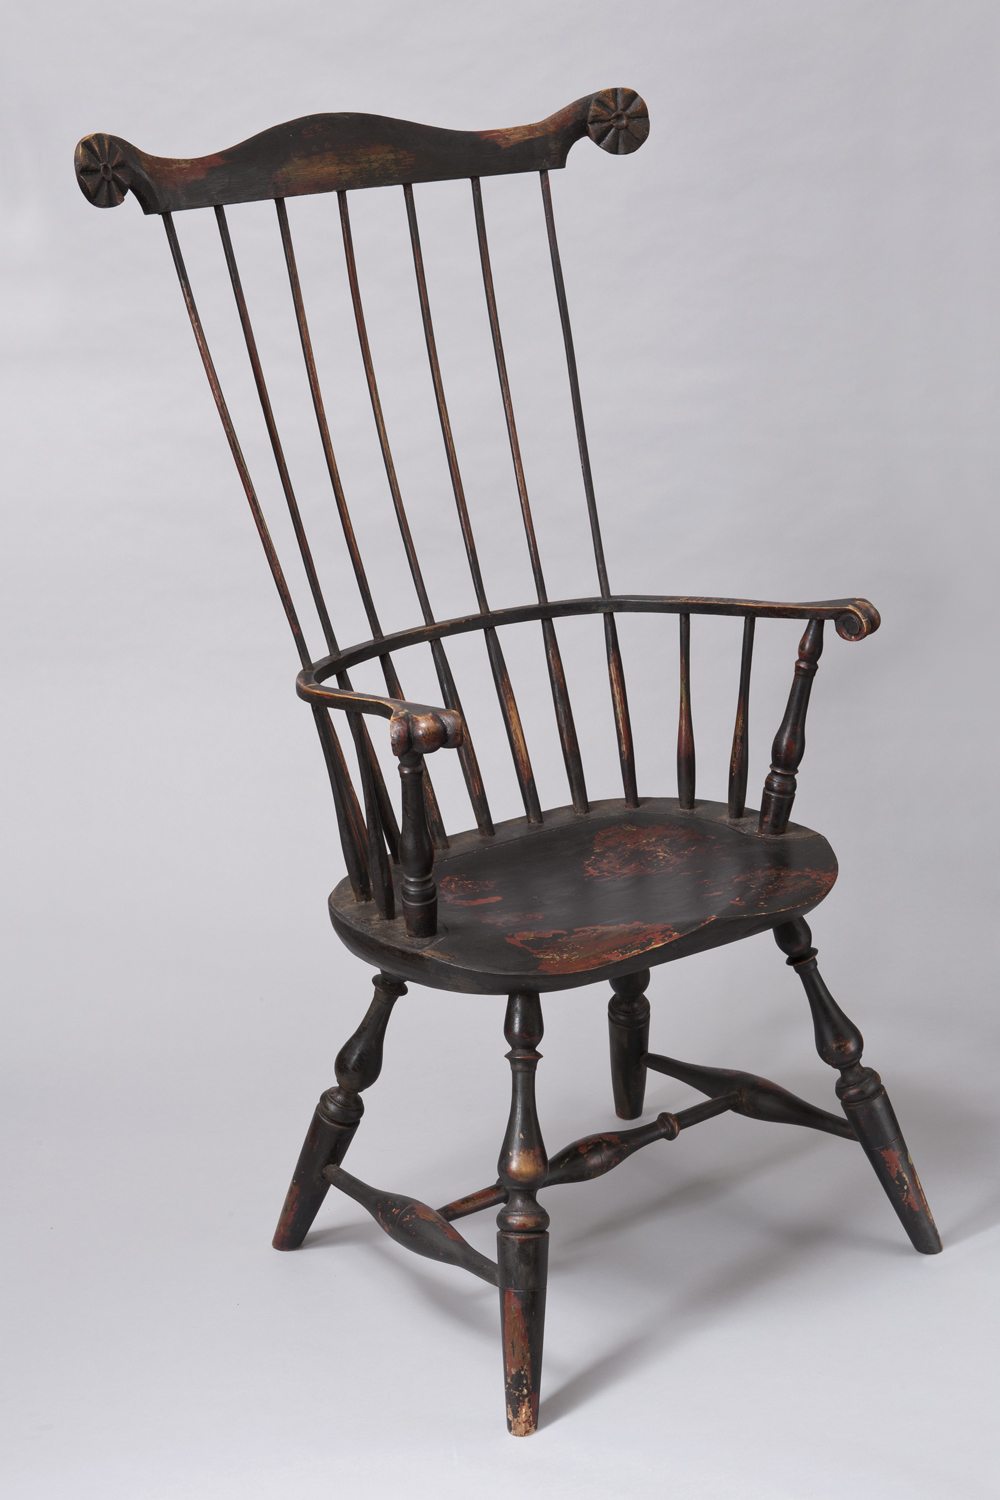 windsor chair with arms perego siesta high chairs david douyard chairmaker comb back